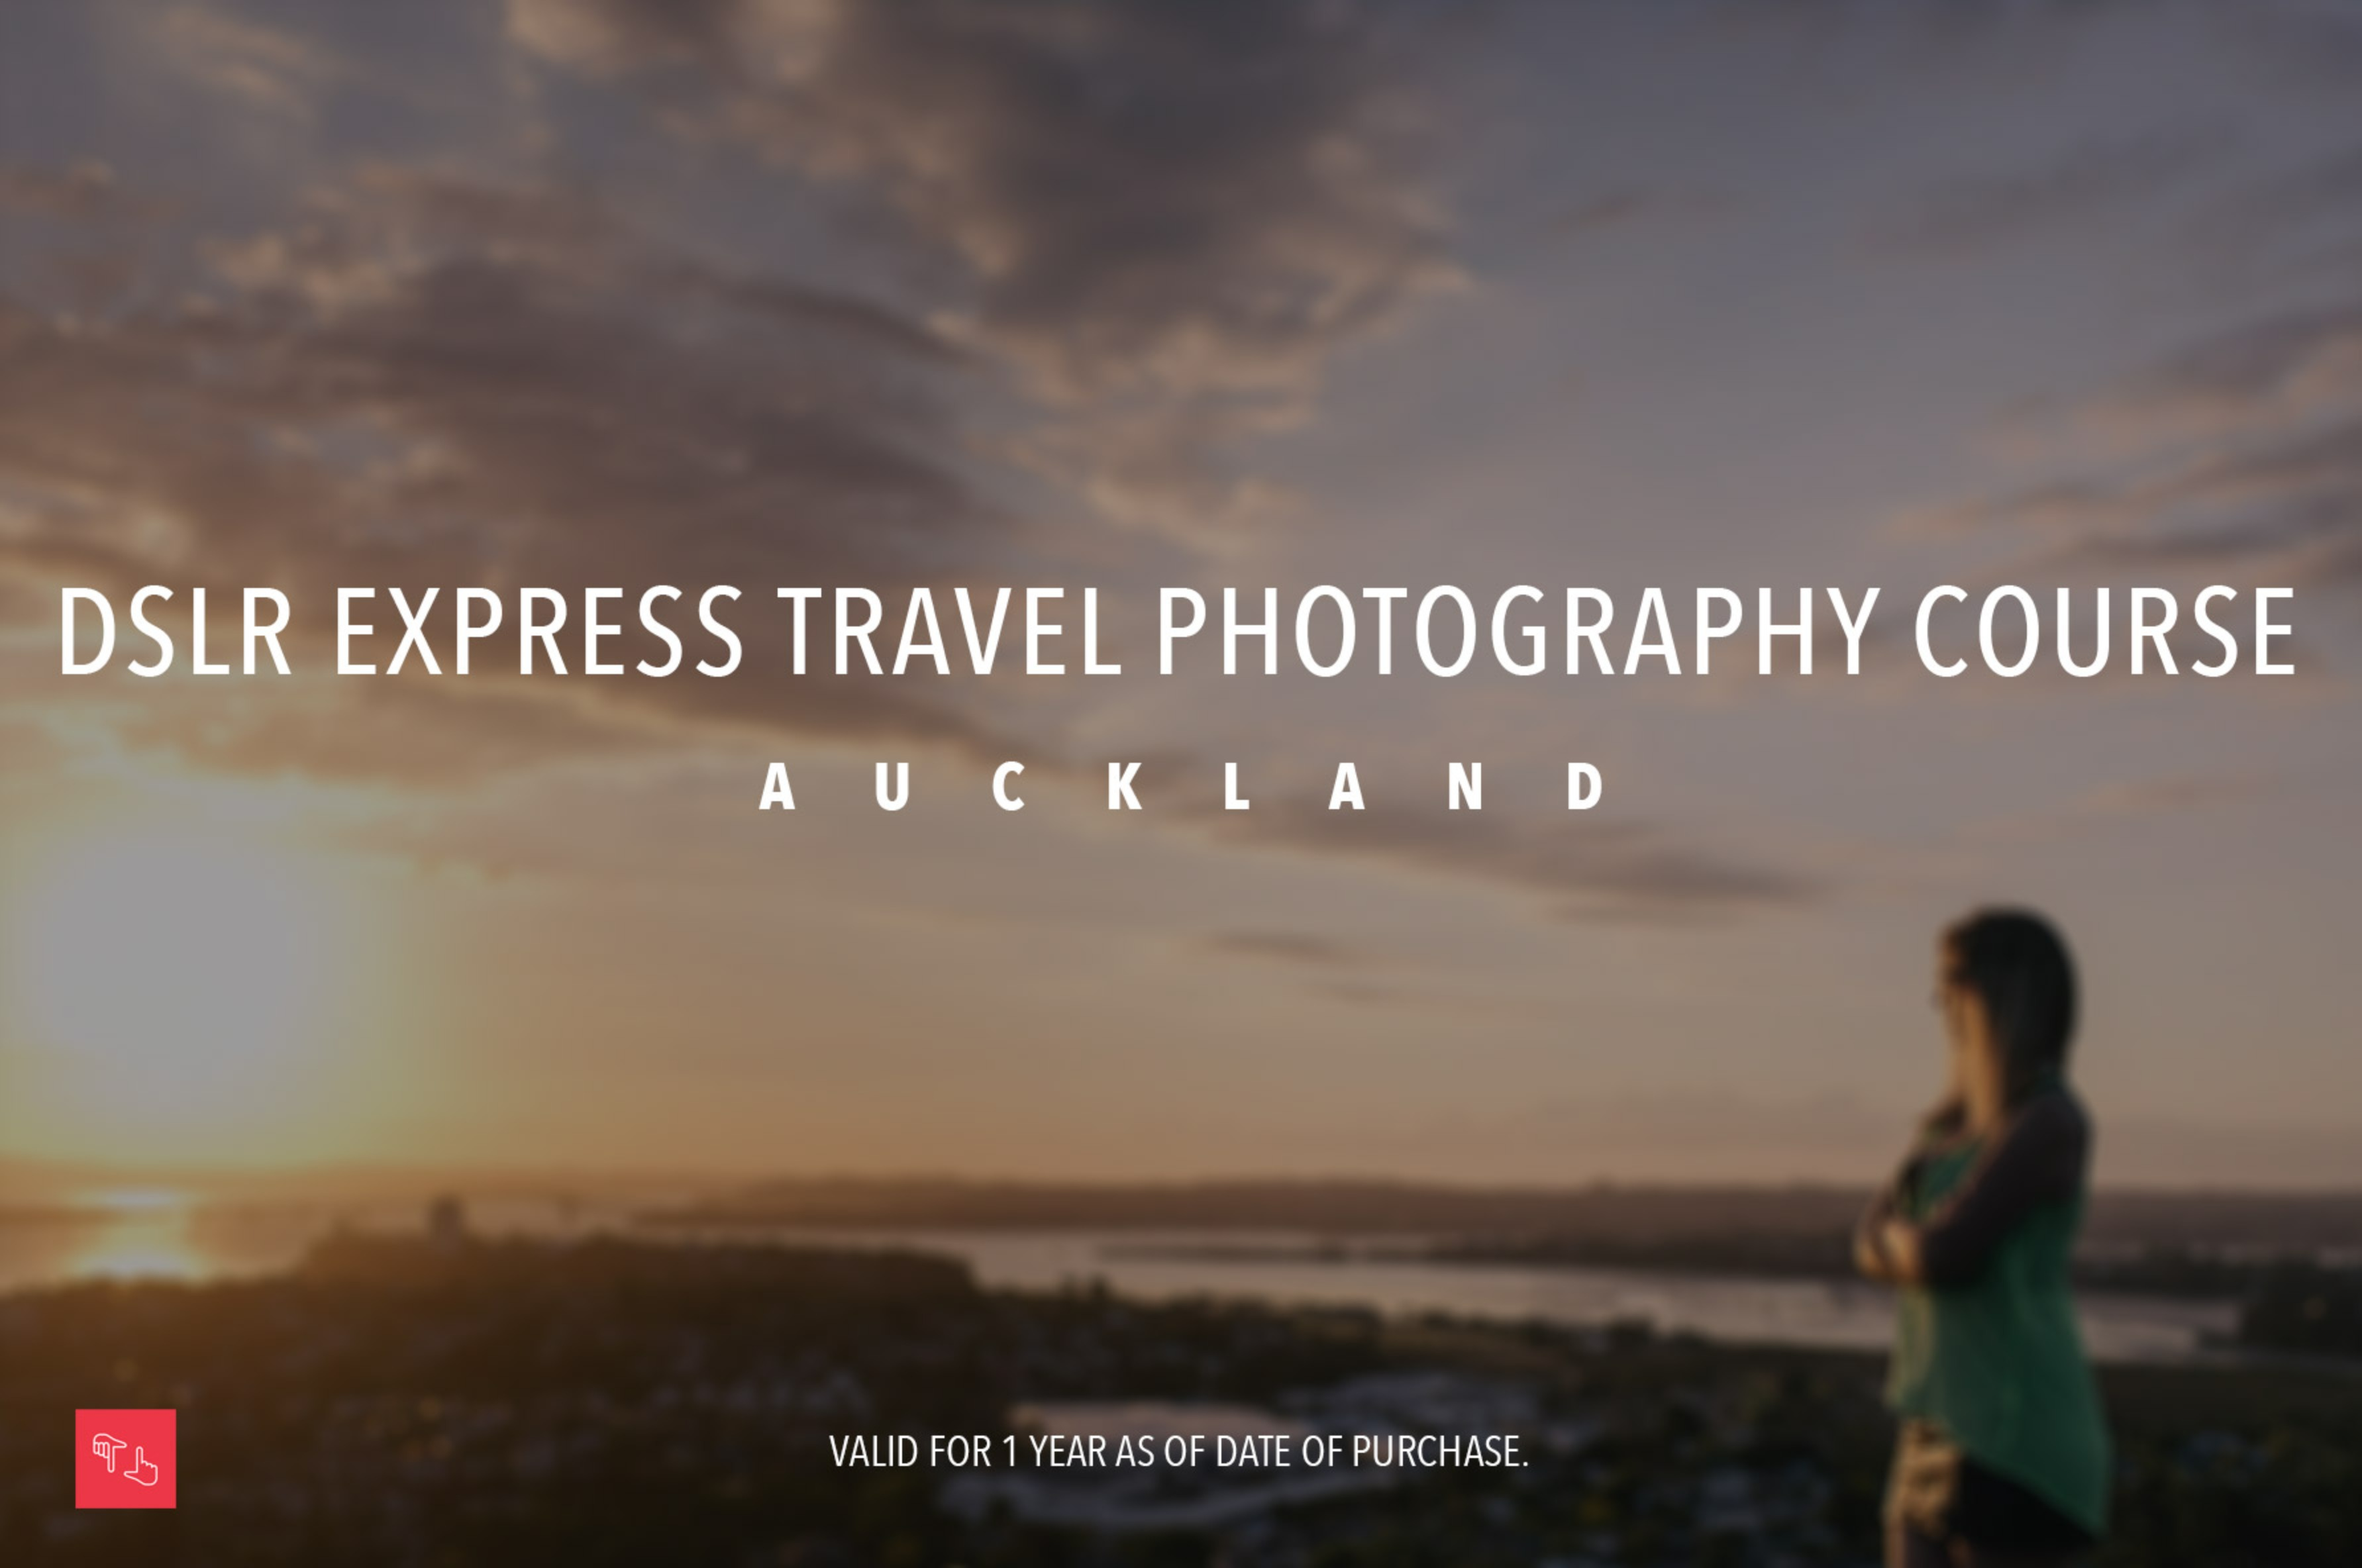 DSLR Express. Travel Photography Course Auckland.